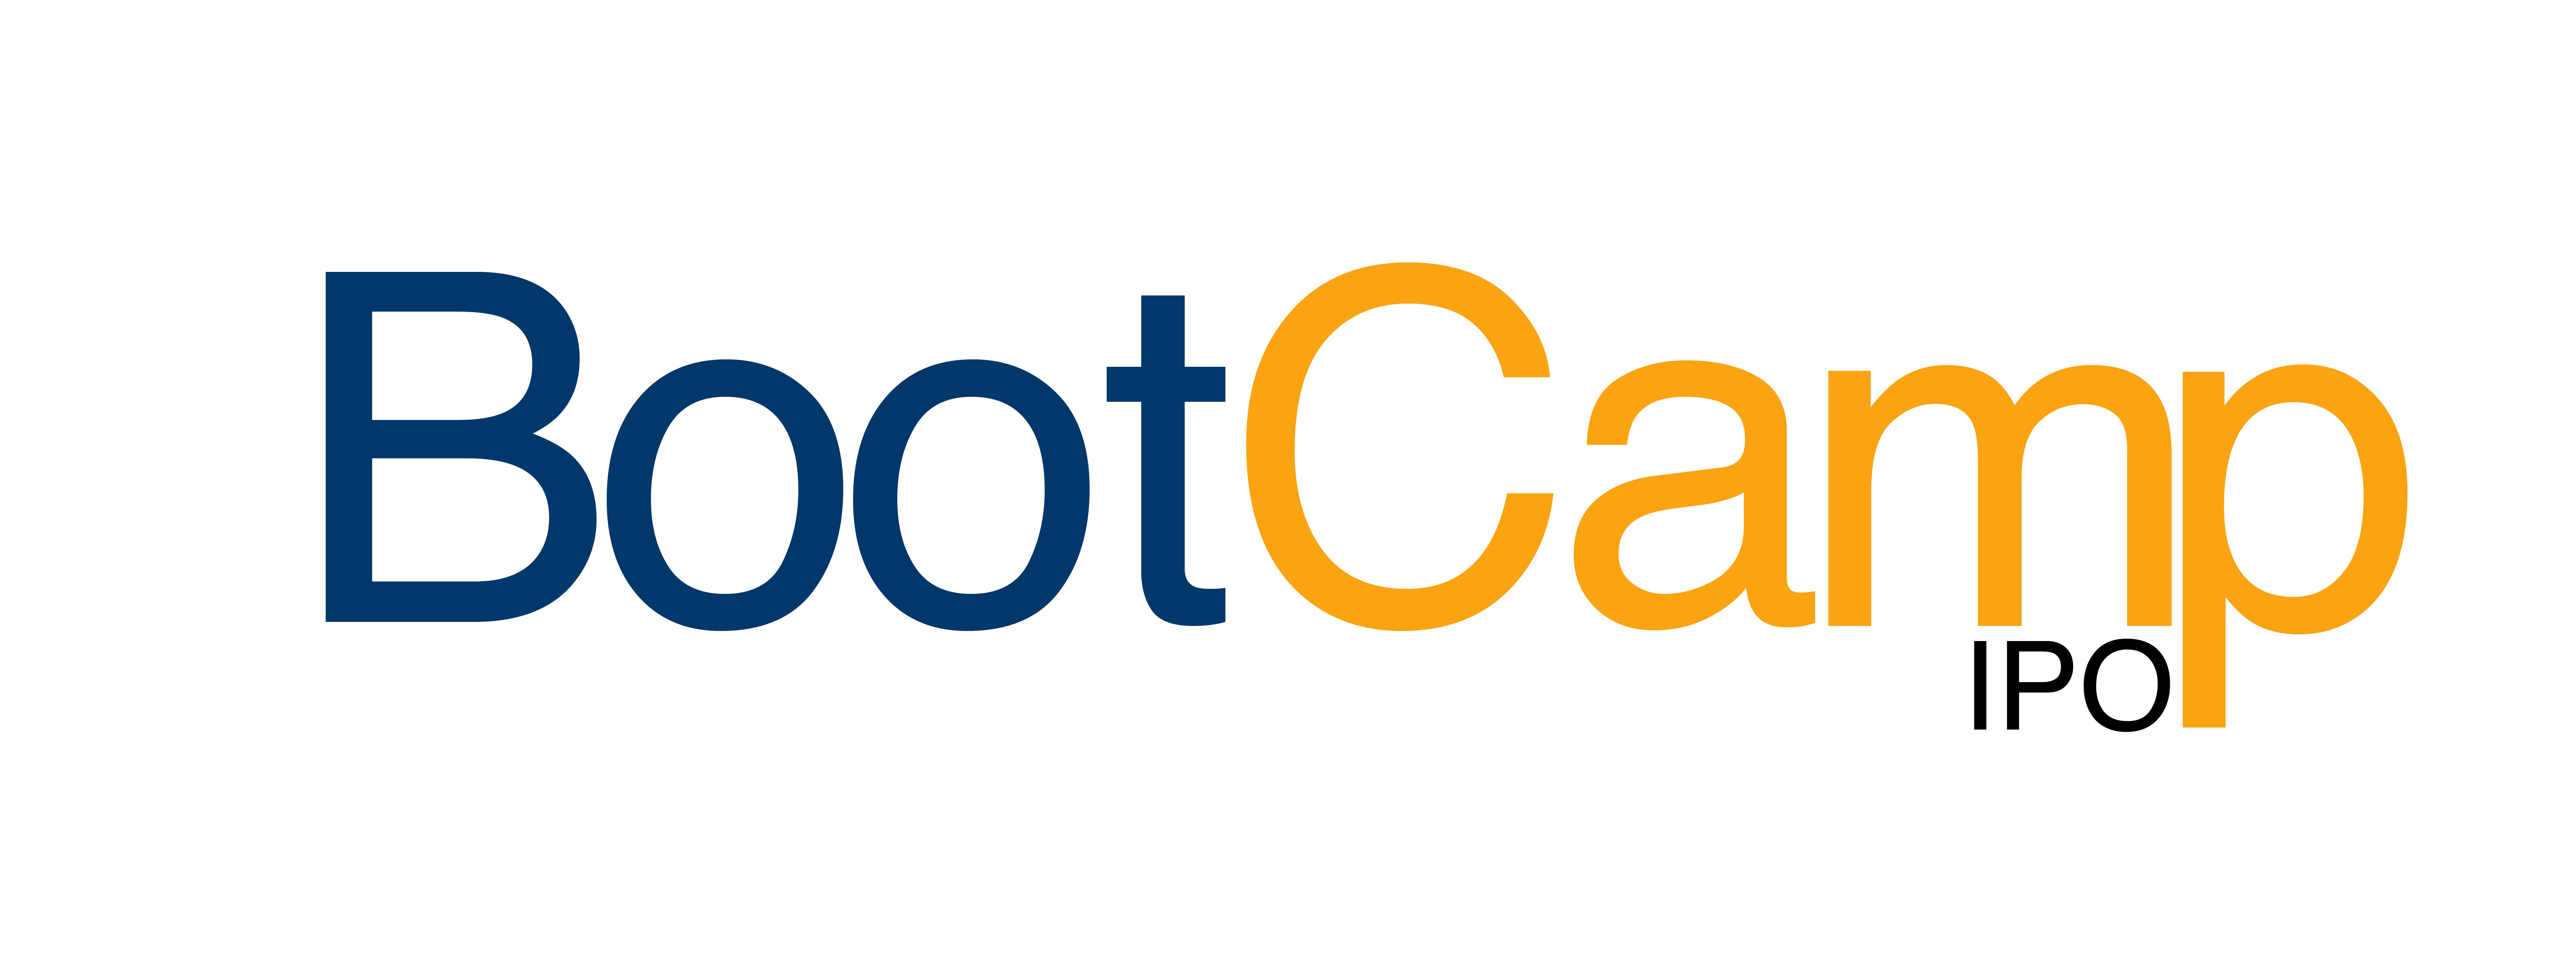 2nd Biotech and Money IPO Bootcamp